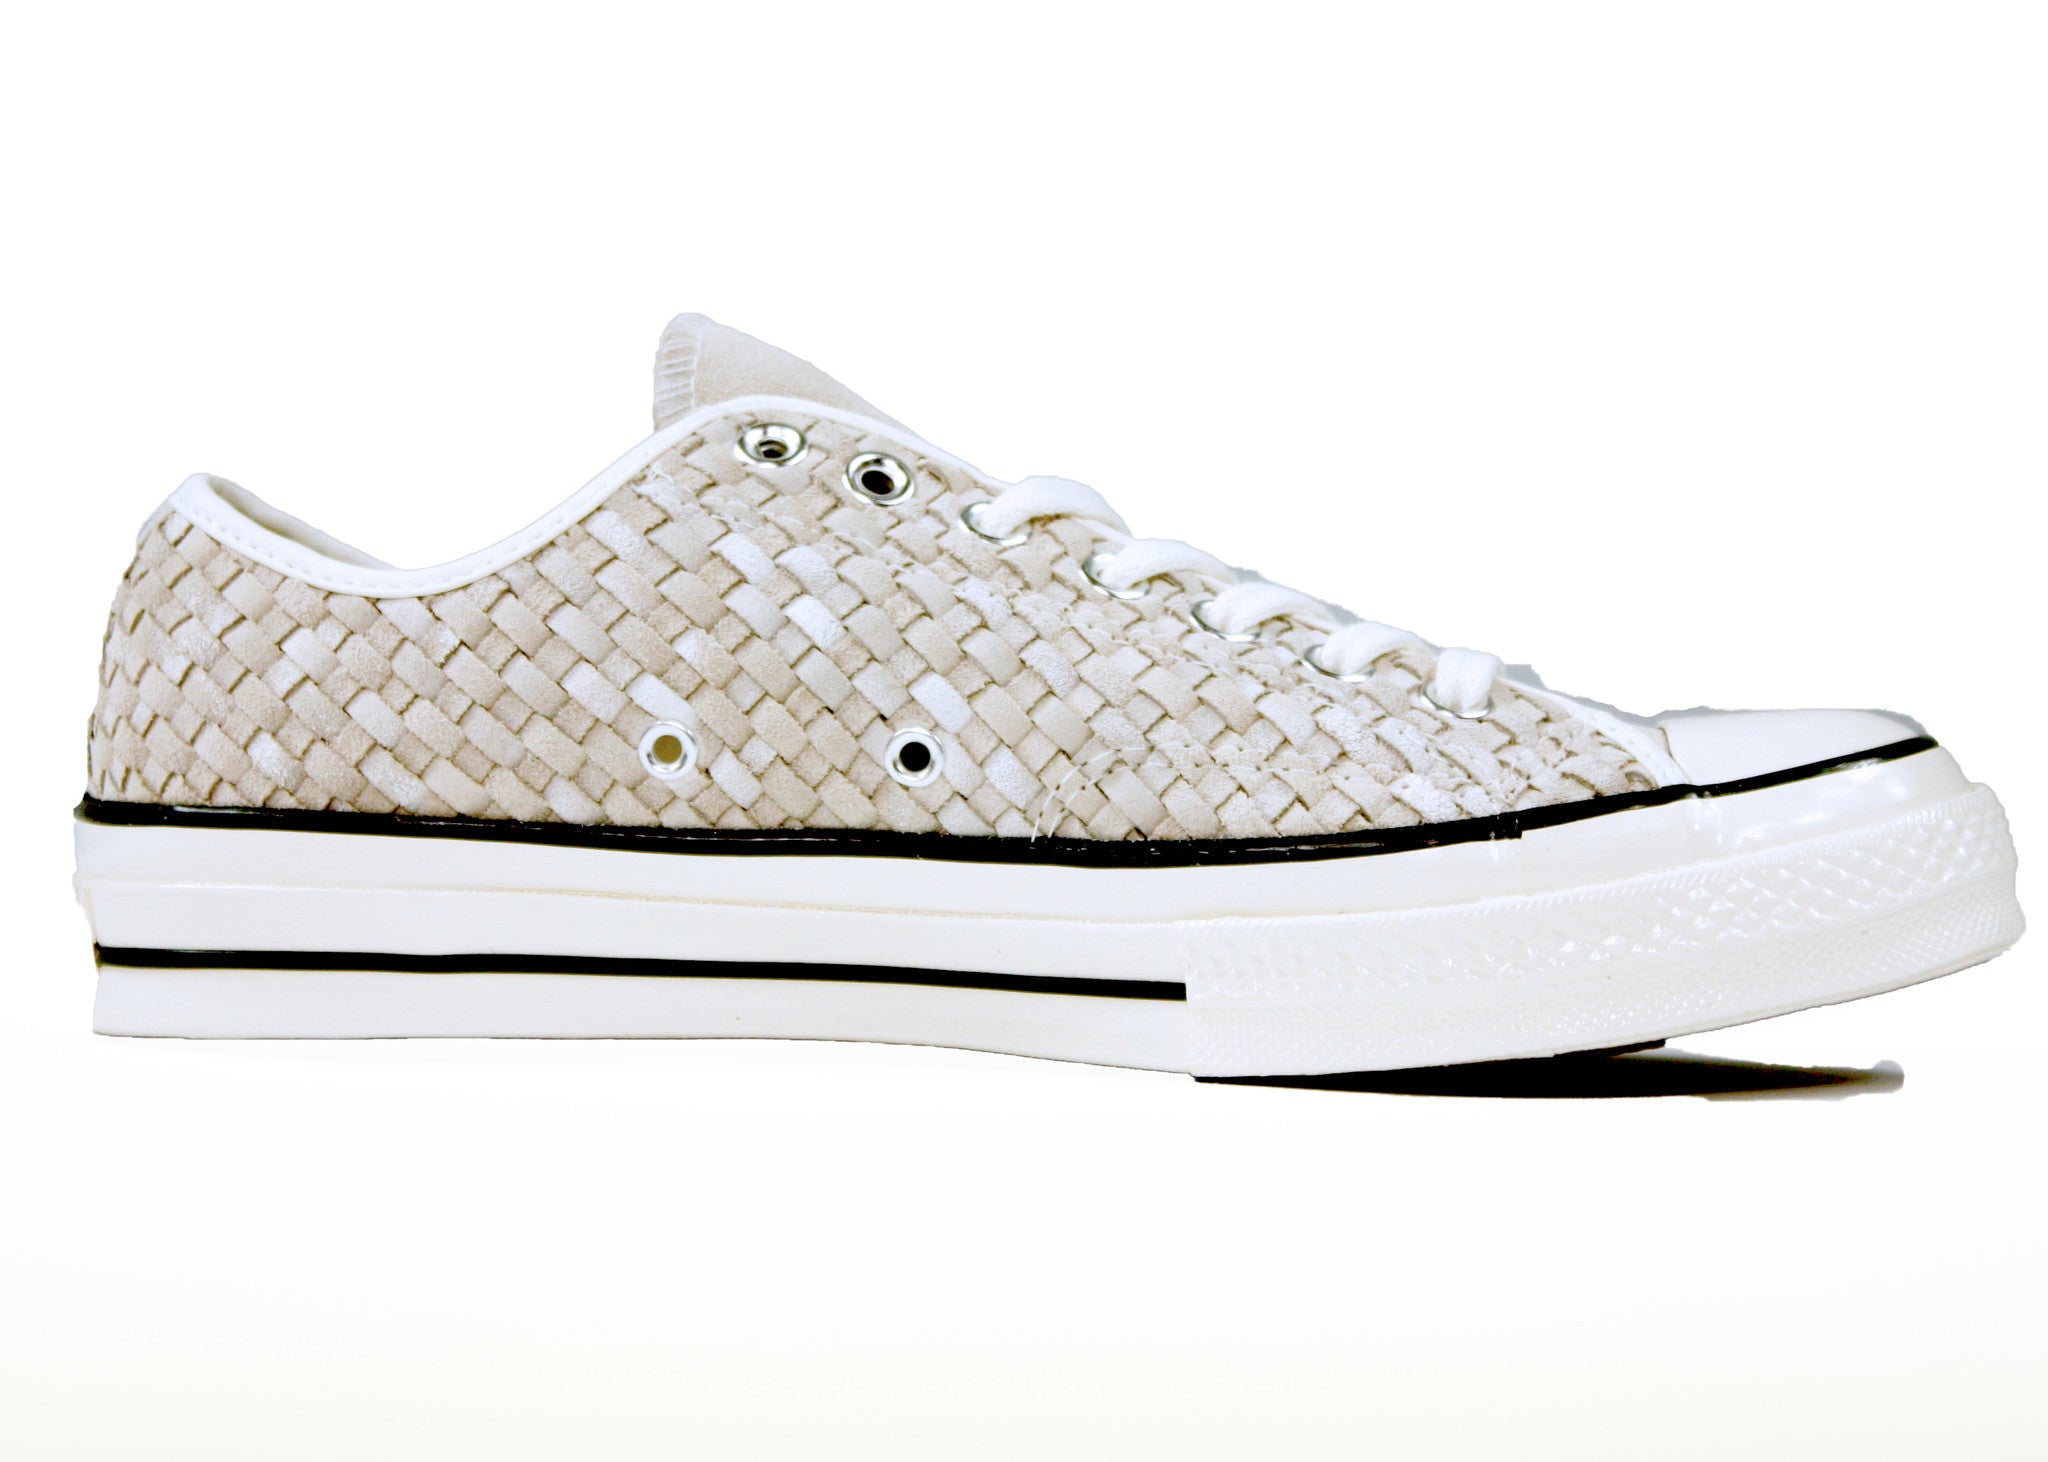 Chuck Taylor All Star '70 Woven Suede